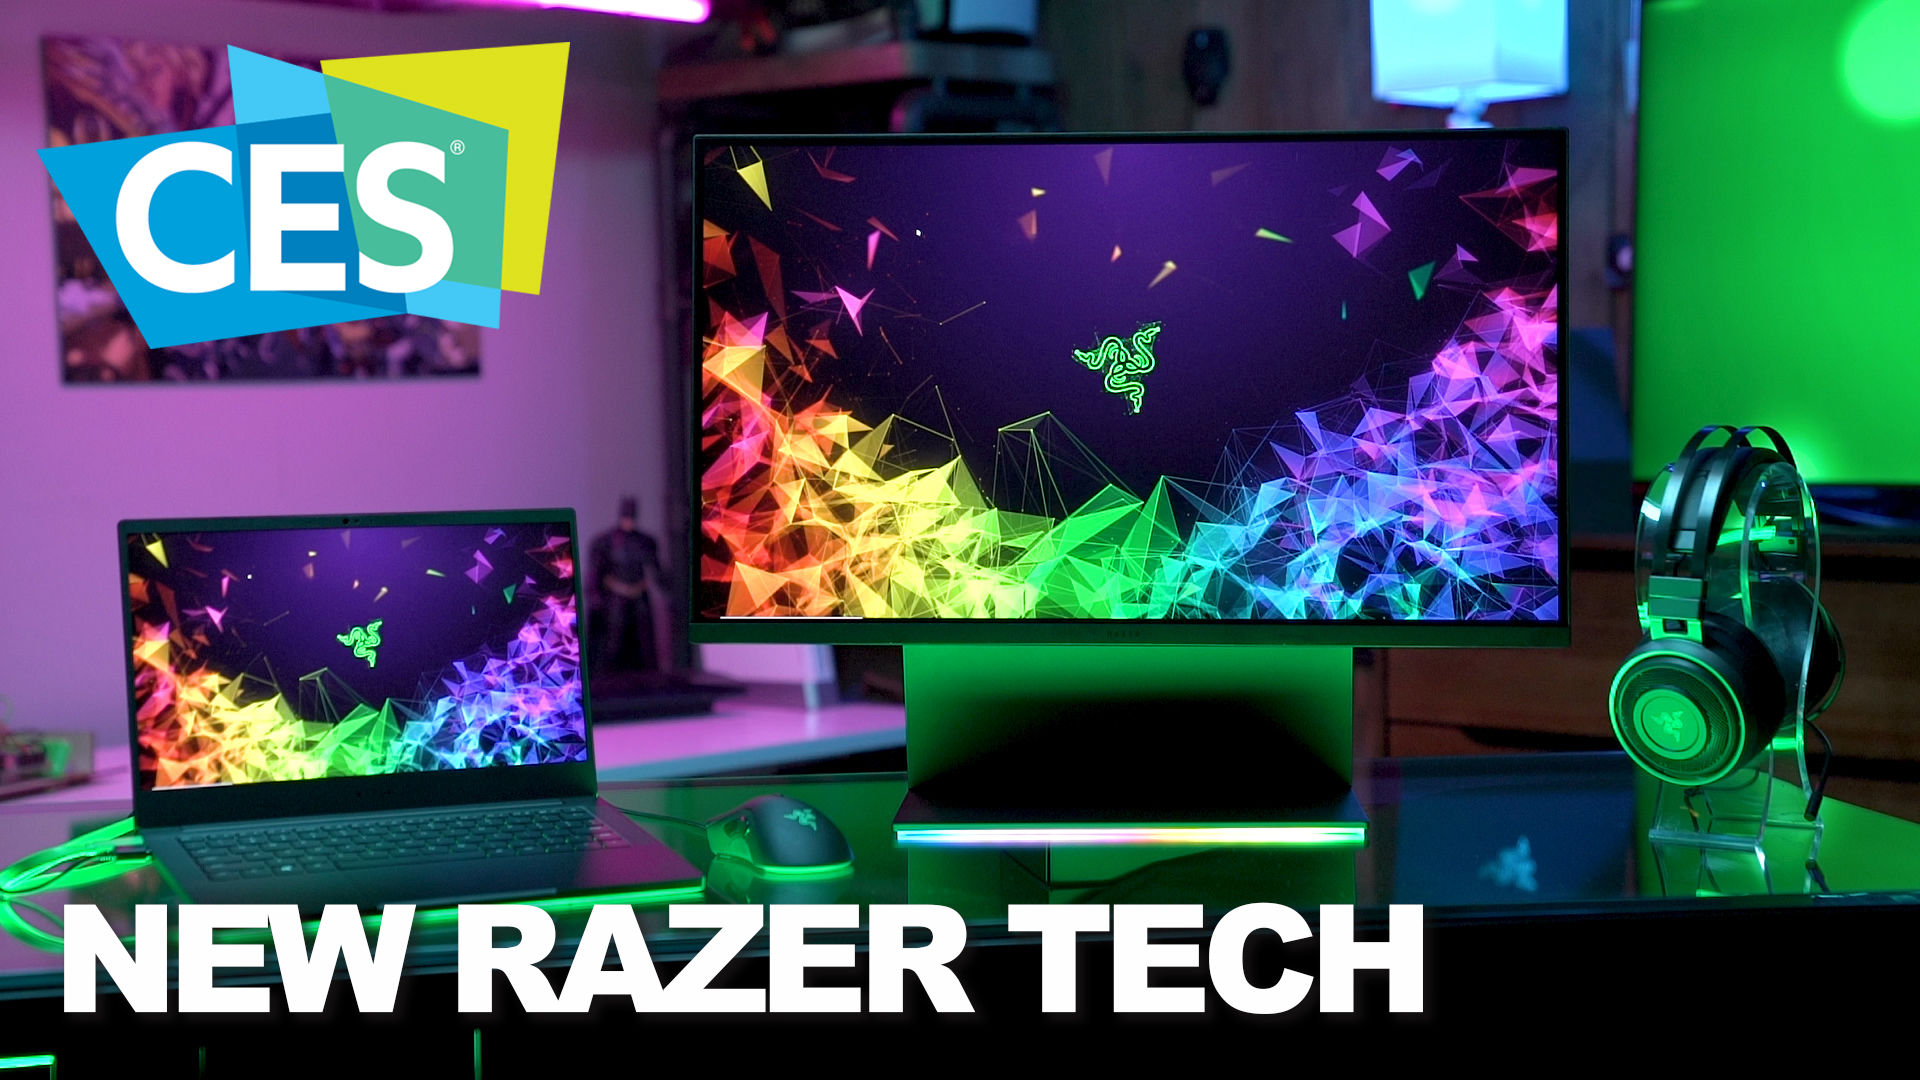 CES 2019: Razer unveils the Raptor Monitor and RTX Powered